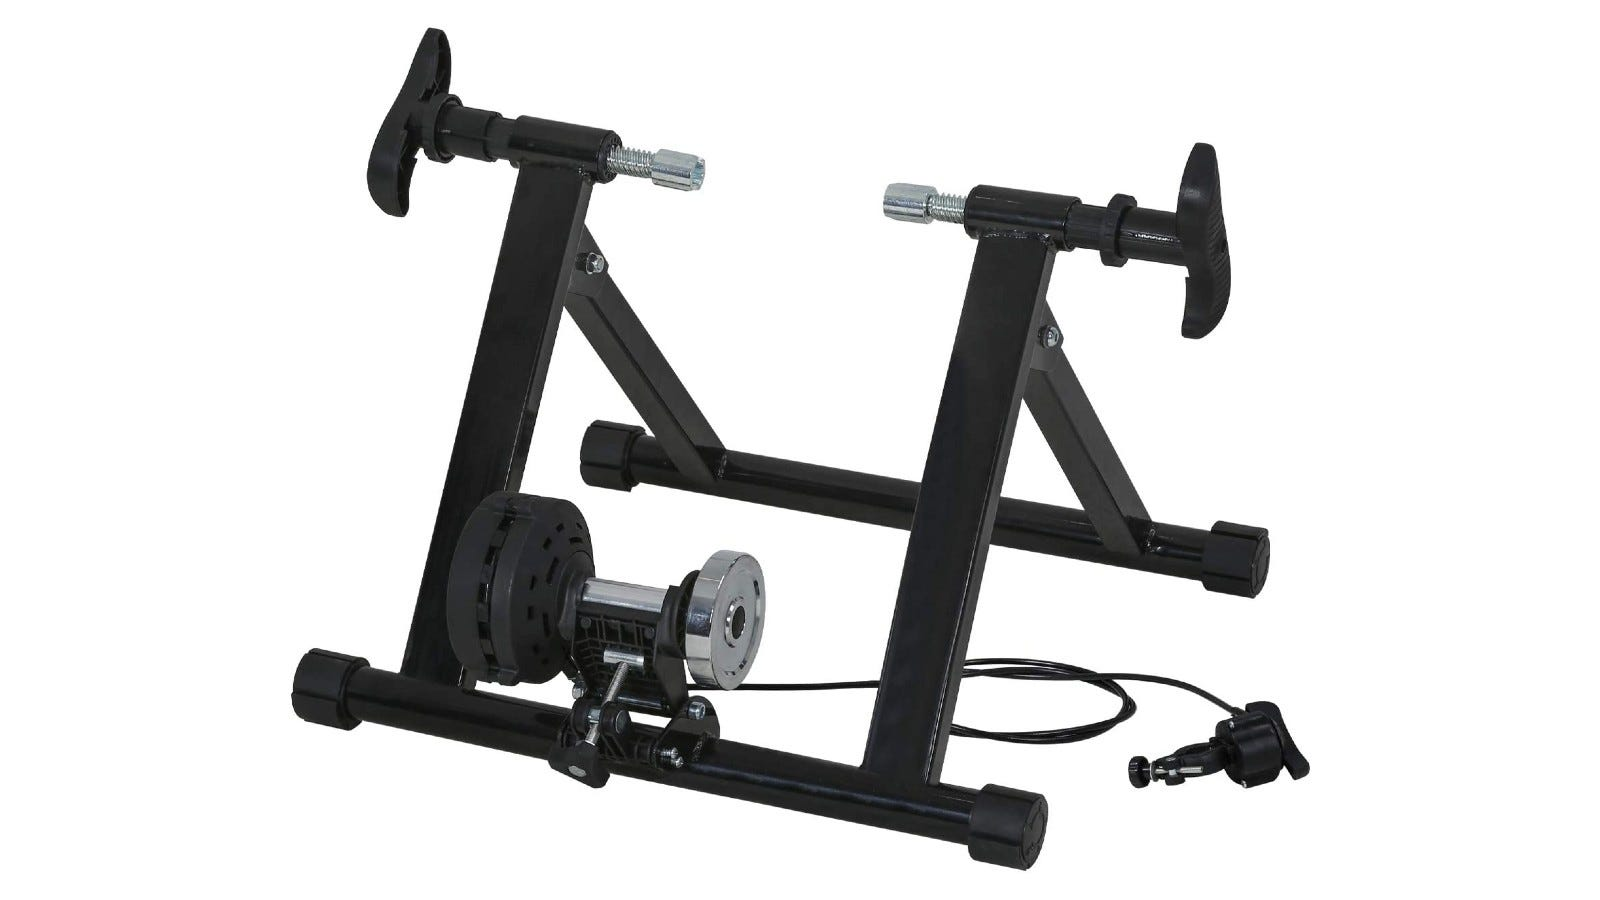 A bike trainer made of sturdy carbon steel material.